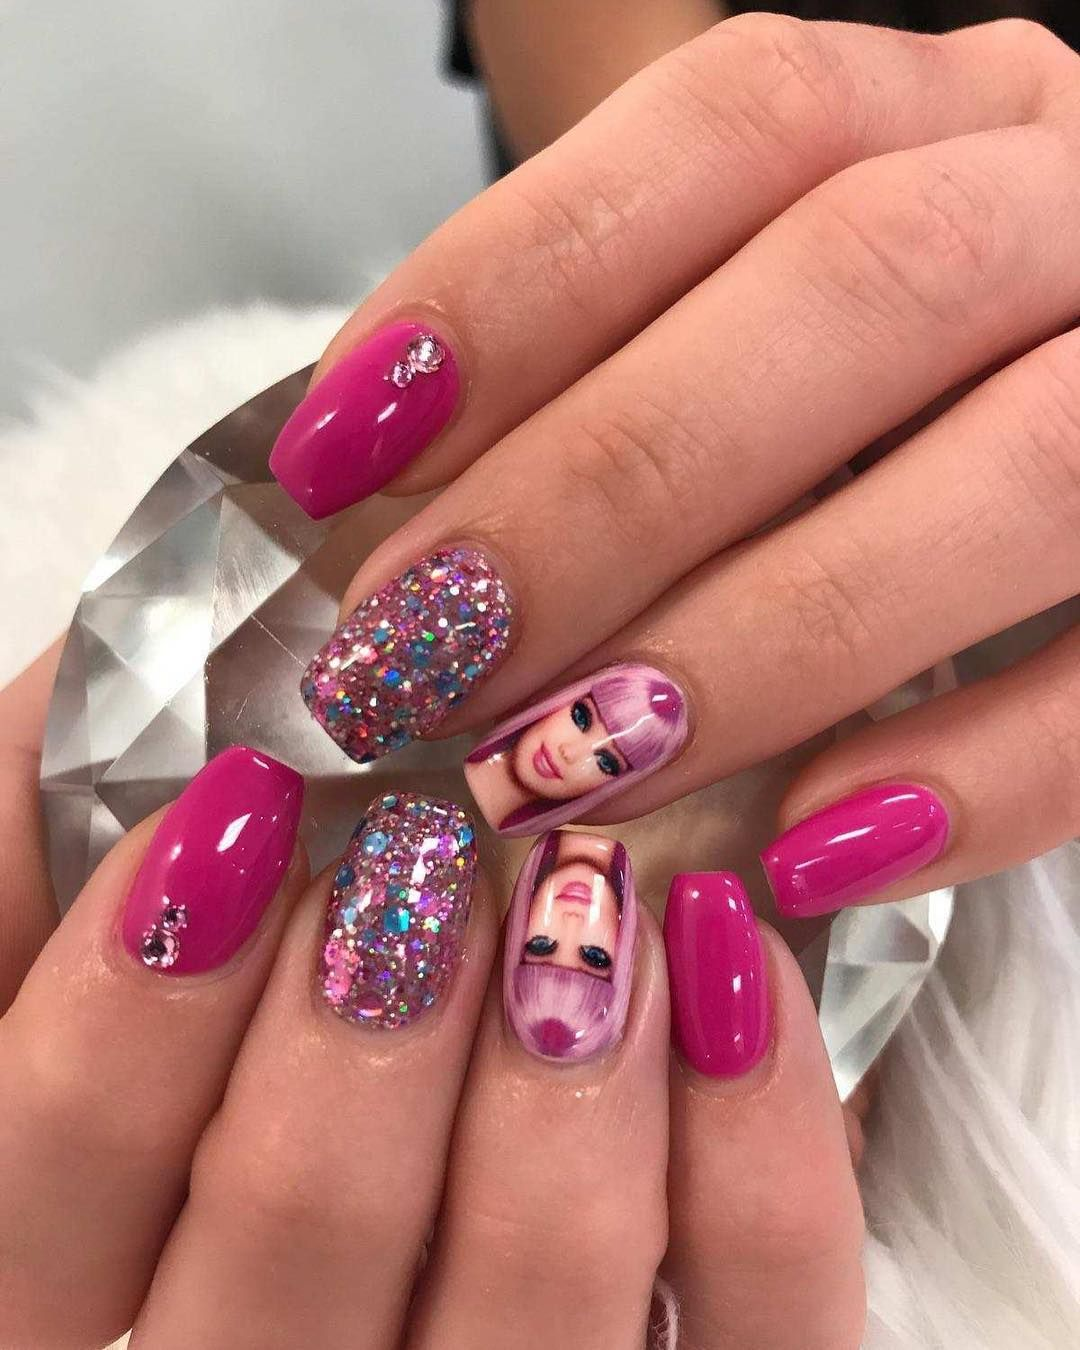 Barbie Pink Nails By Bri From Nohea Nails In Las Vegas Barbie Pink Nails Pink Nails Nails